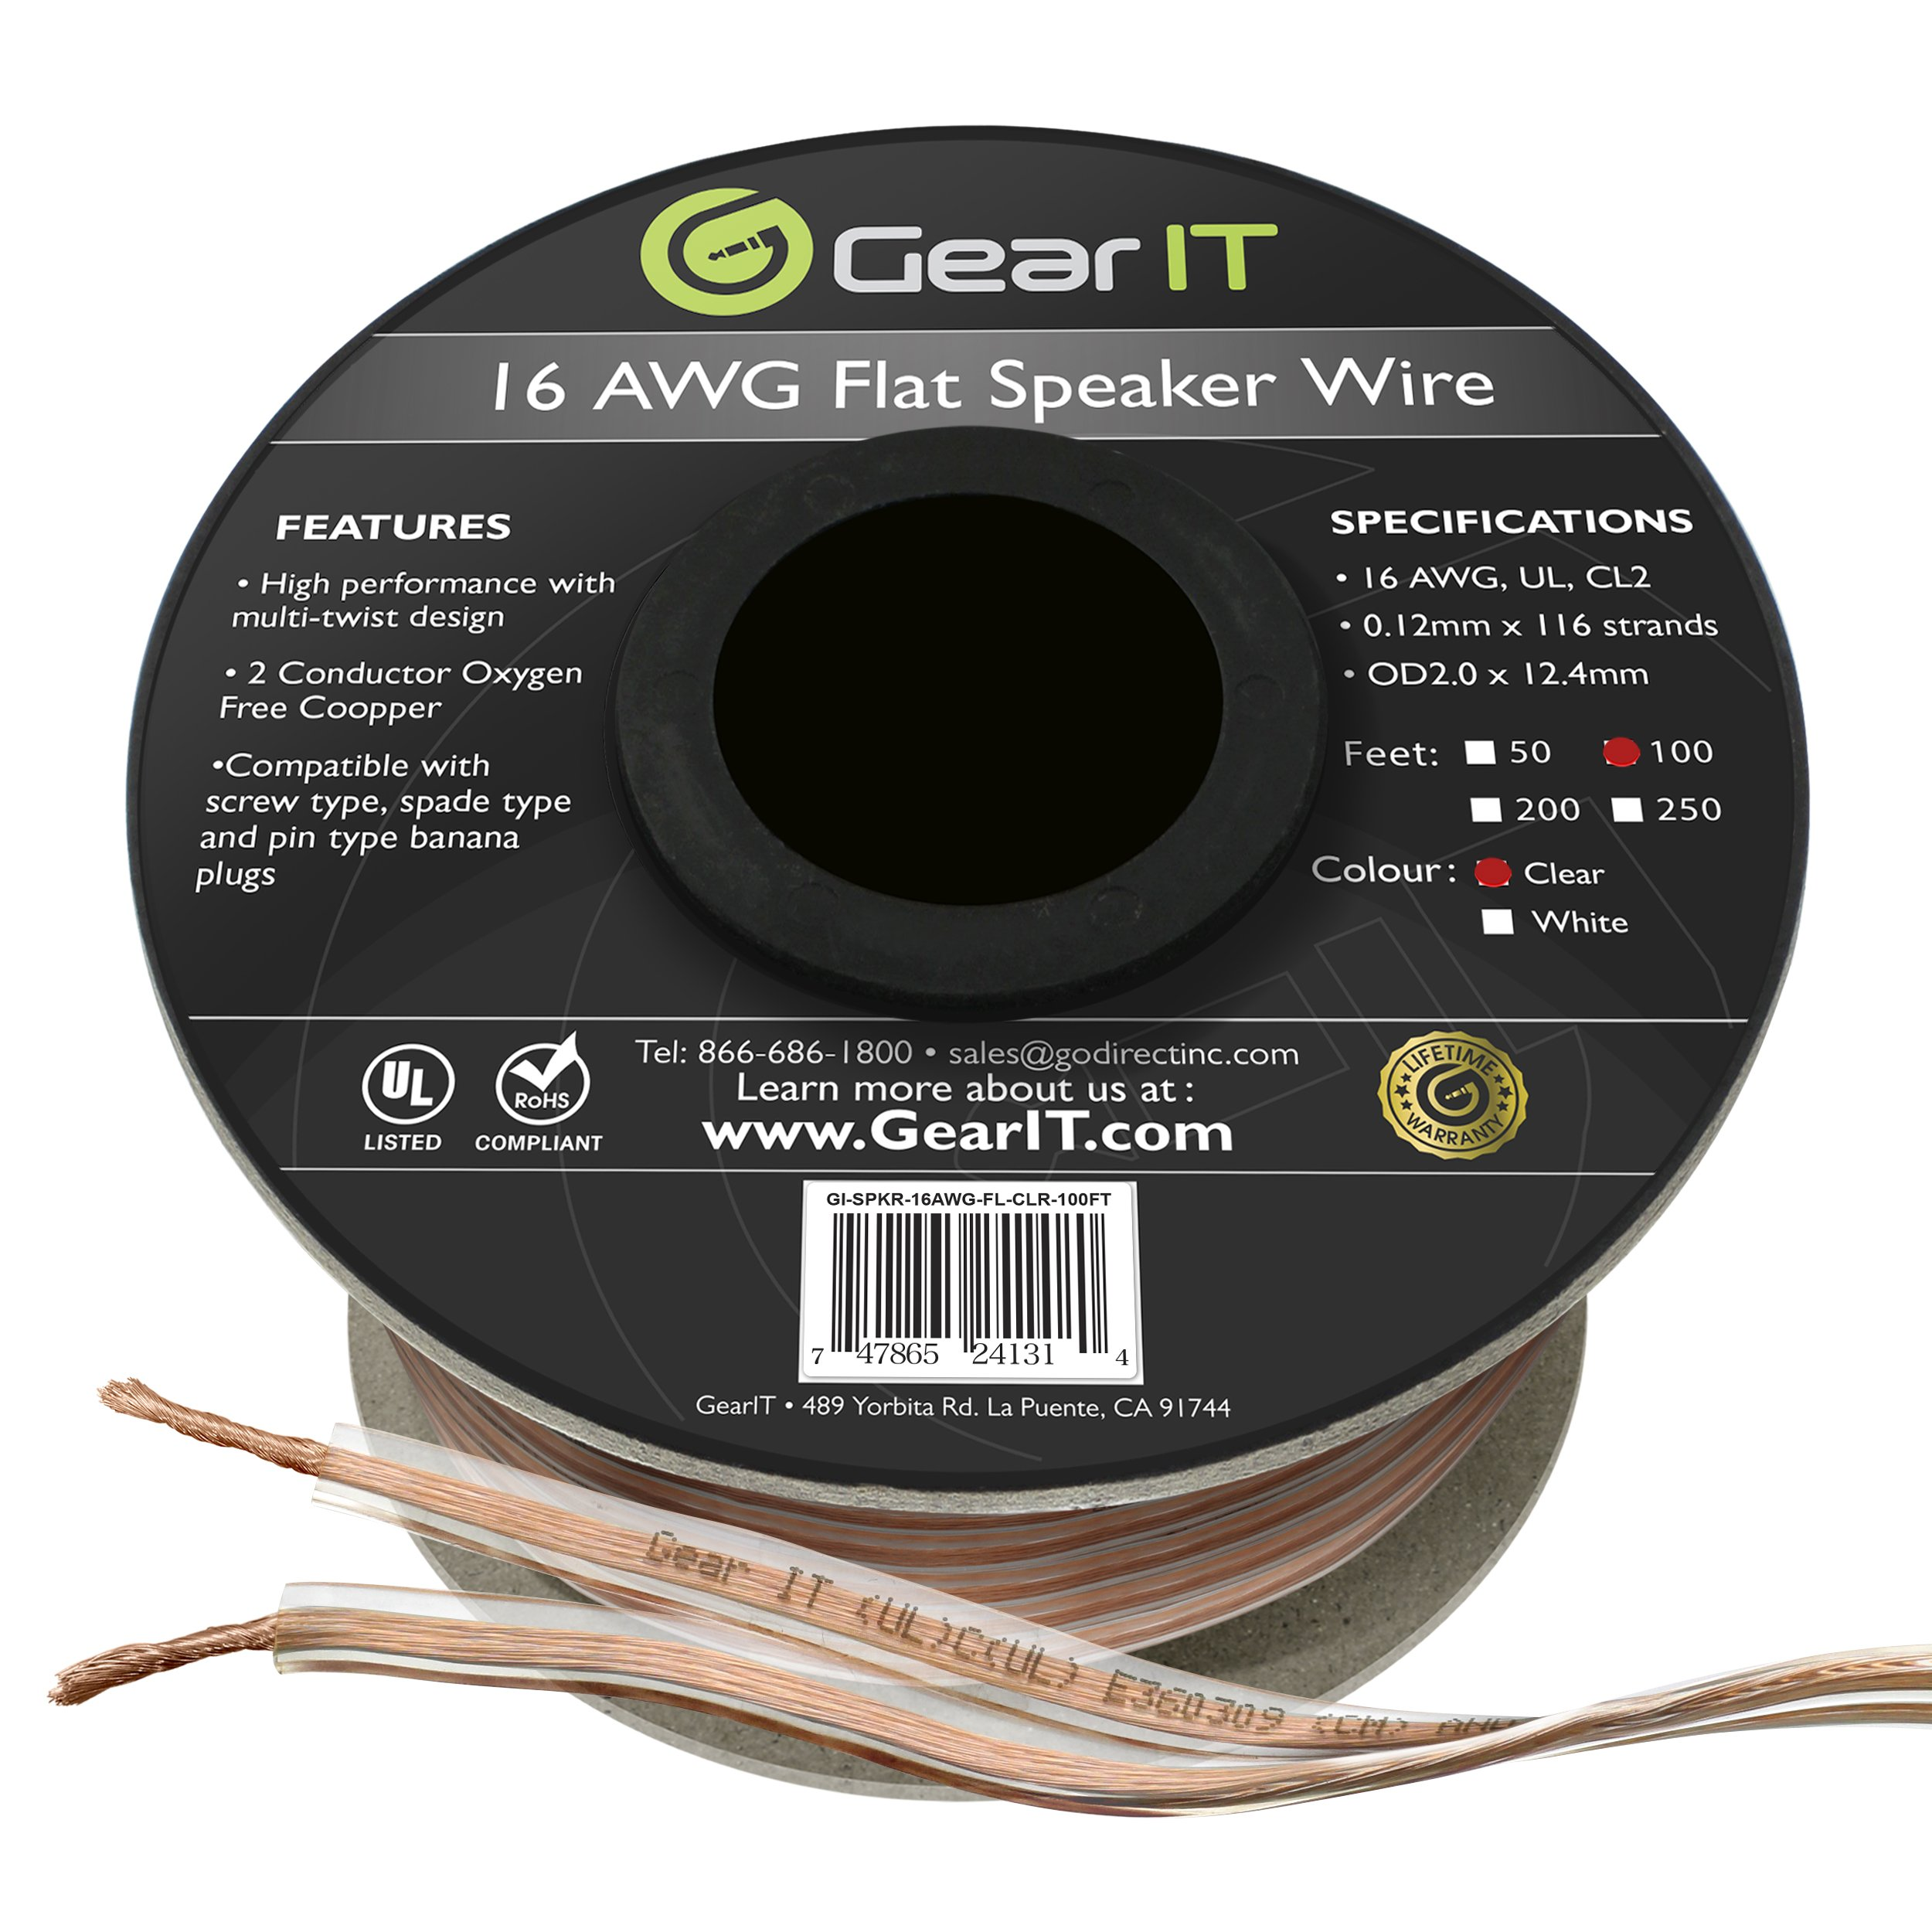 GearIT Elite Series 16AWG Flat Speaker Wire (100 Feet/30.4 Meters) - Oxygen Free Copper (OFC) CL2 Rated In-Wall Installation for Home Theater, Car Audio, and Outdoor Use, Clear